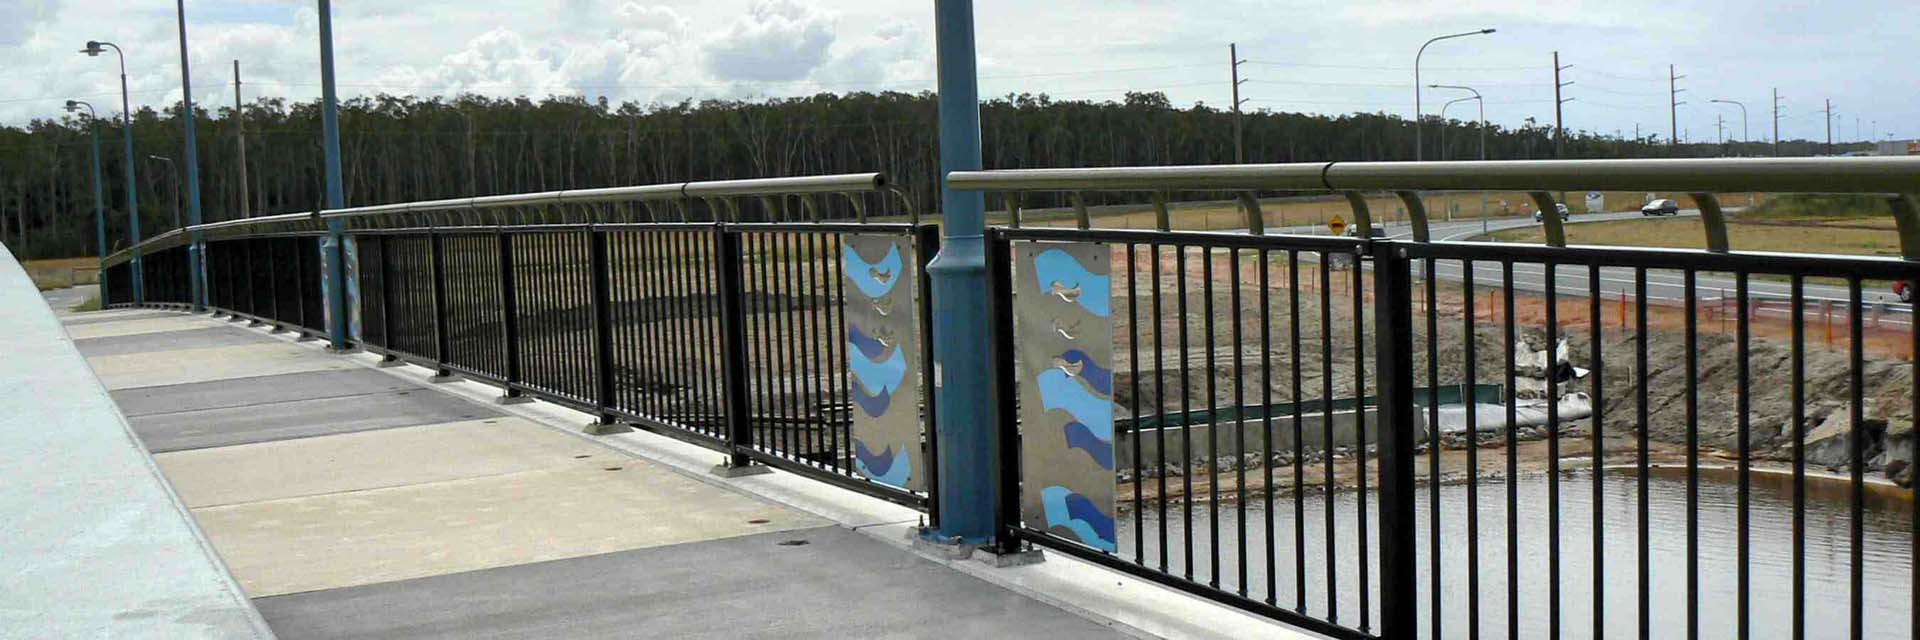 Steel pedestrian balustrade, Birtinya, Sunshine Coast.